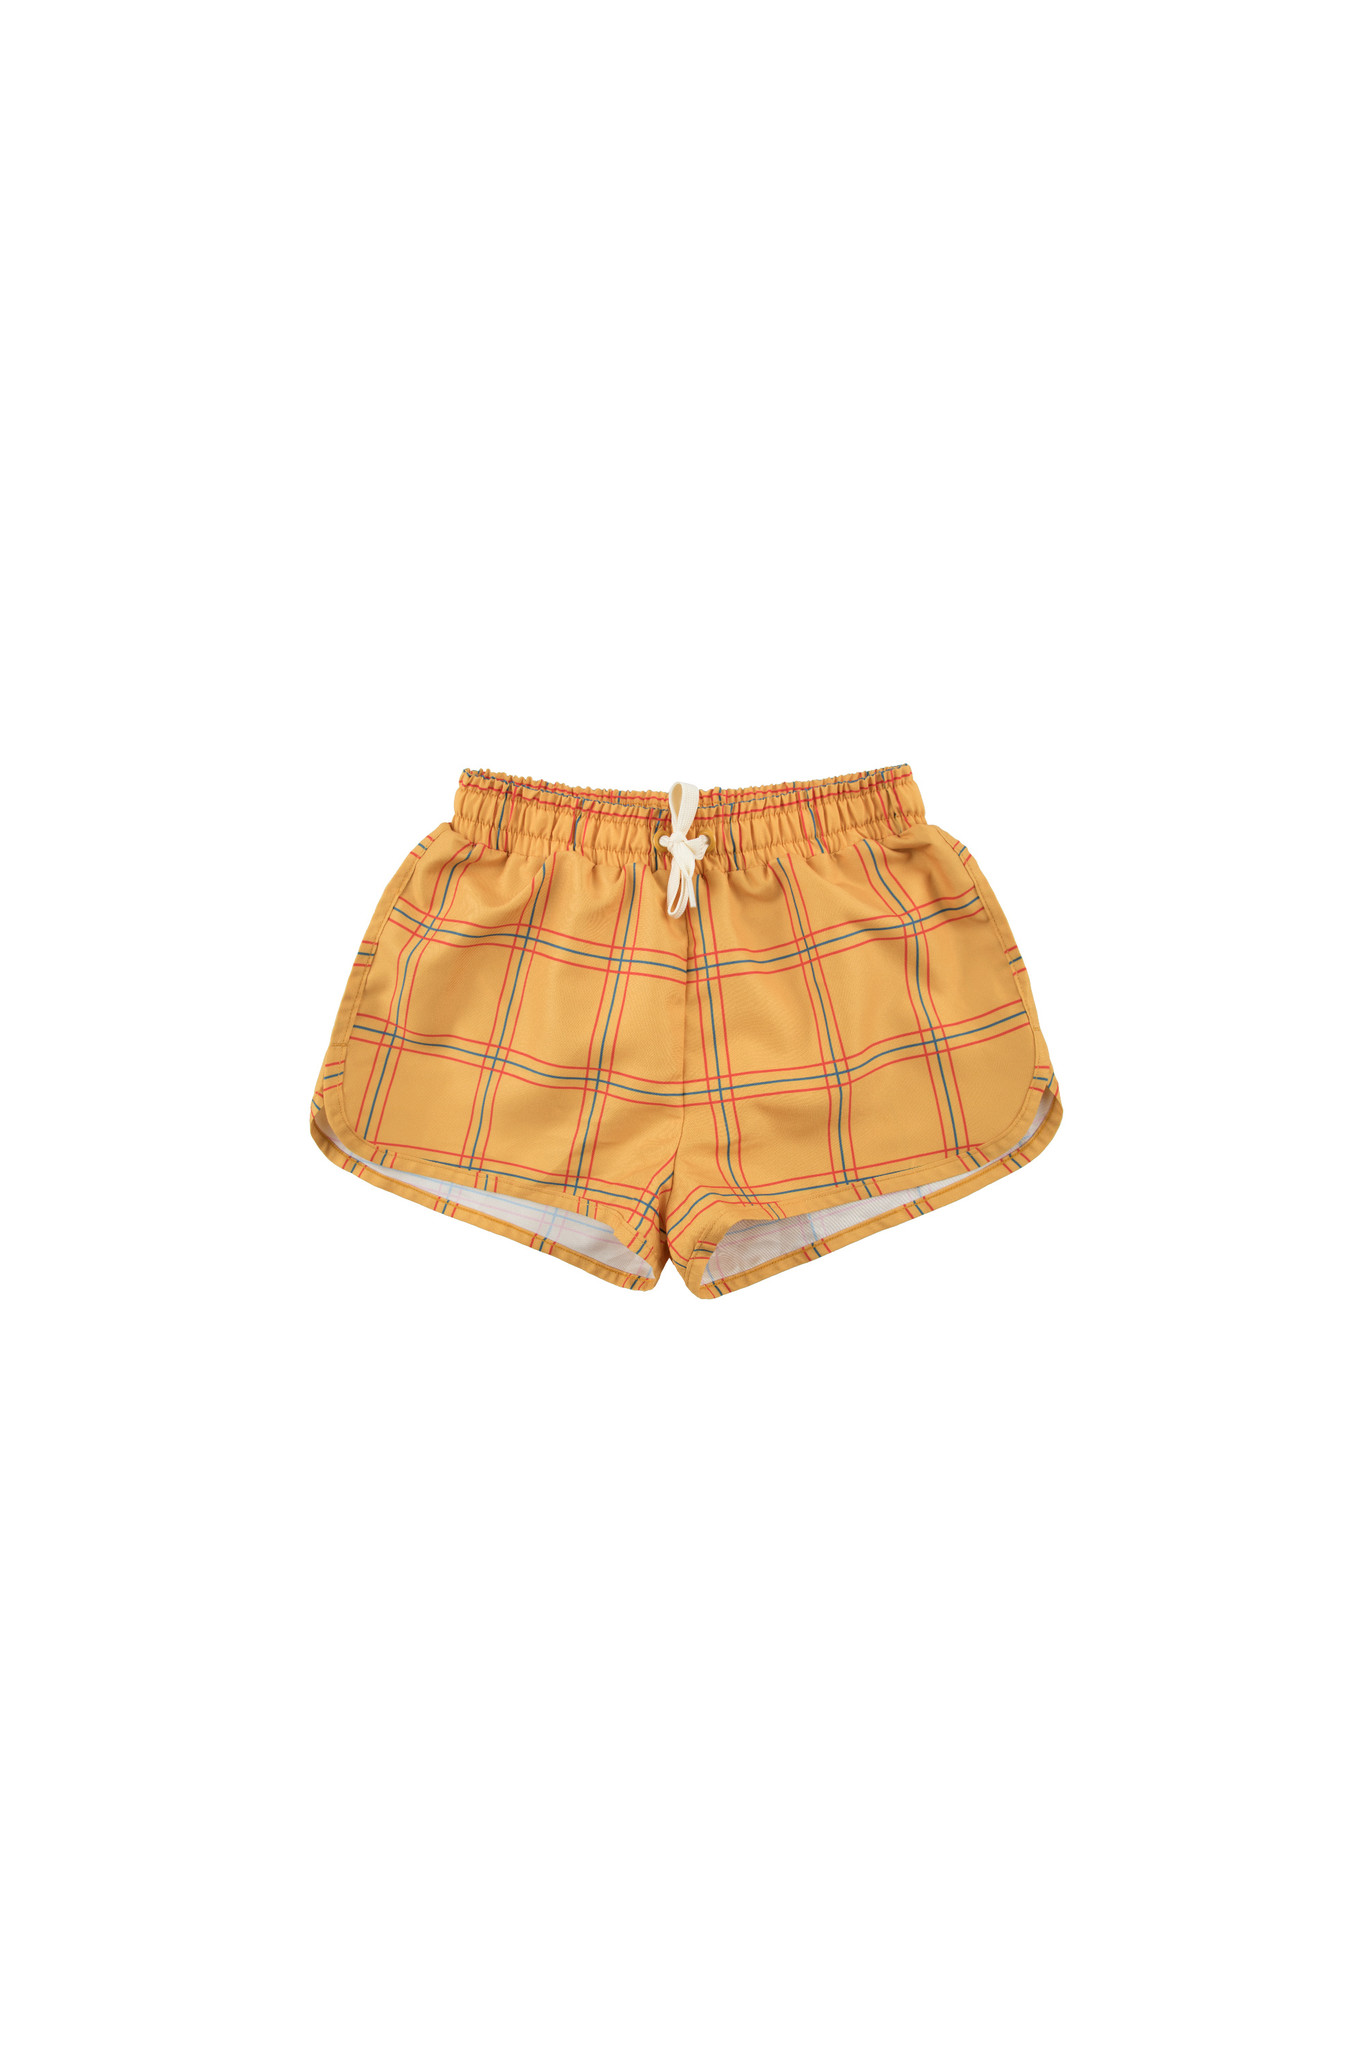 CHECK TRUNKS - Gold / Red-1